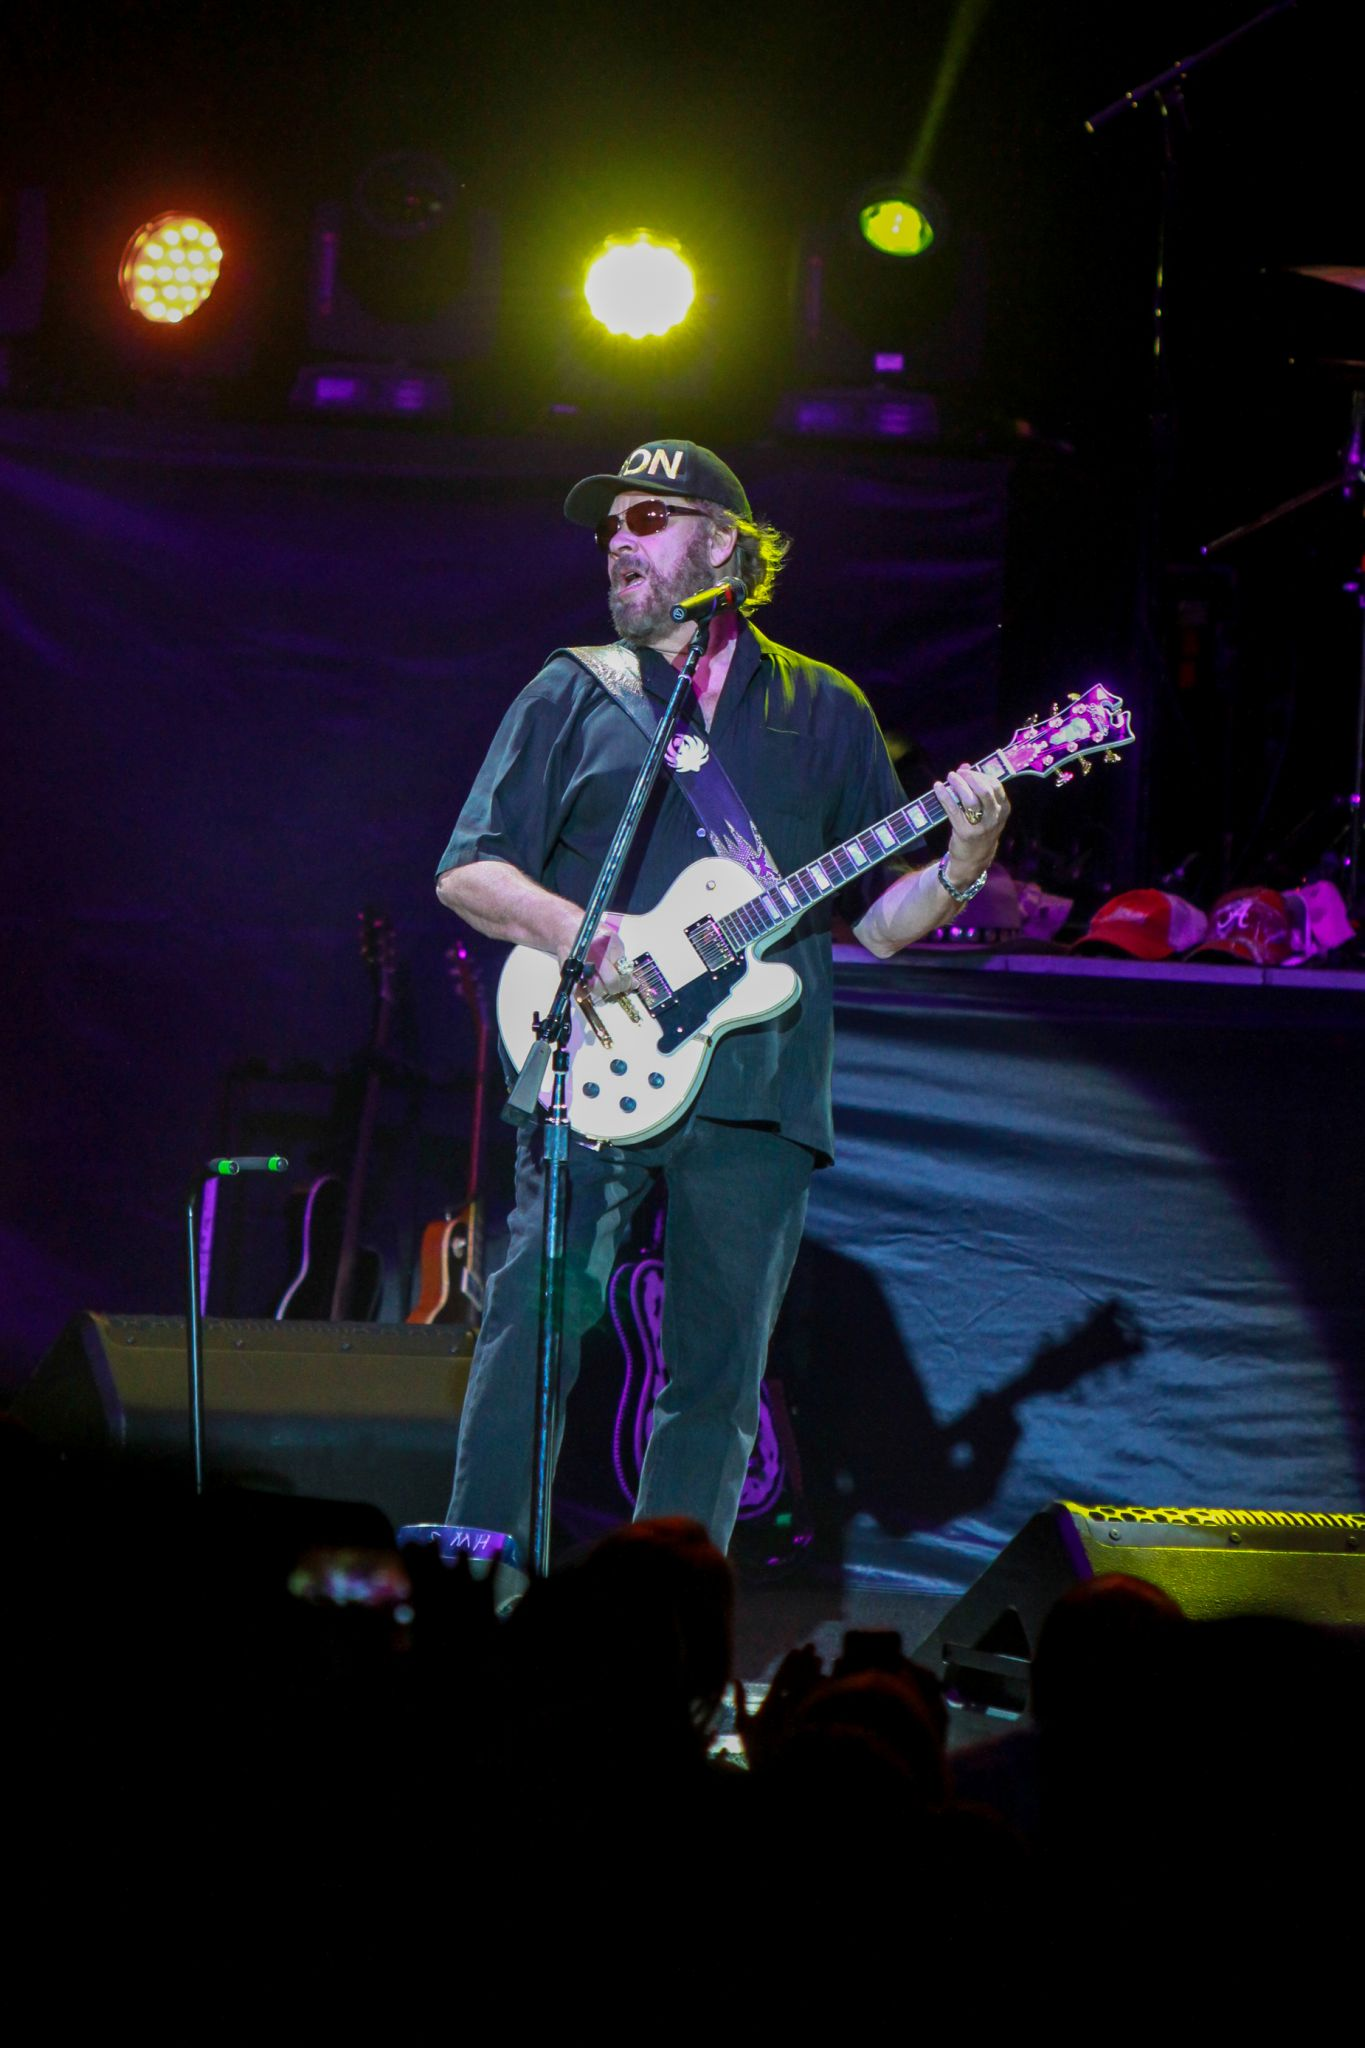 hank williams jr essays Hank williams jr essay hank williams jr also known as bocephus, is a public icon to the country music world you can't bring up country music legends without mentioning hank williams jr.